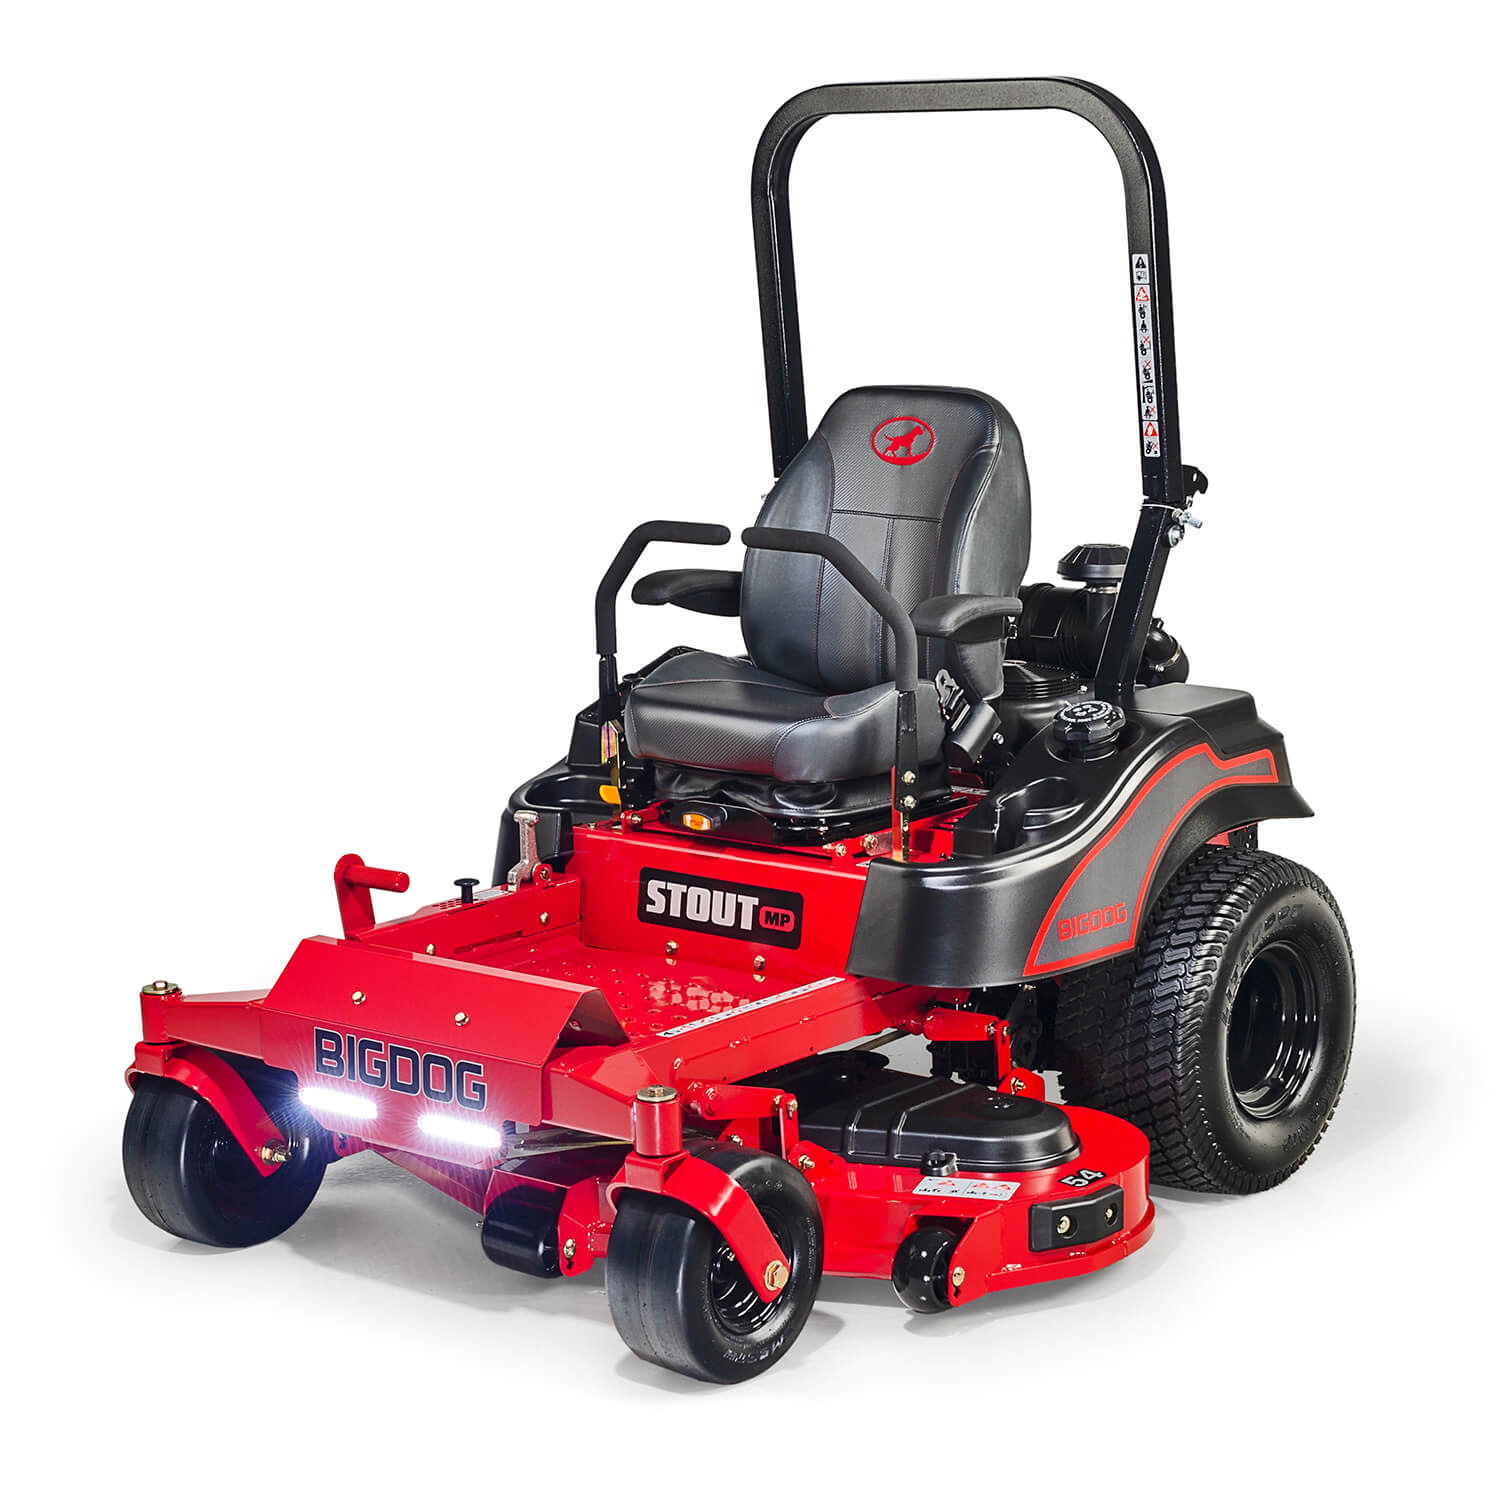 New, 2020, BigDog Mower Co, Stout MP 60